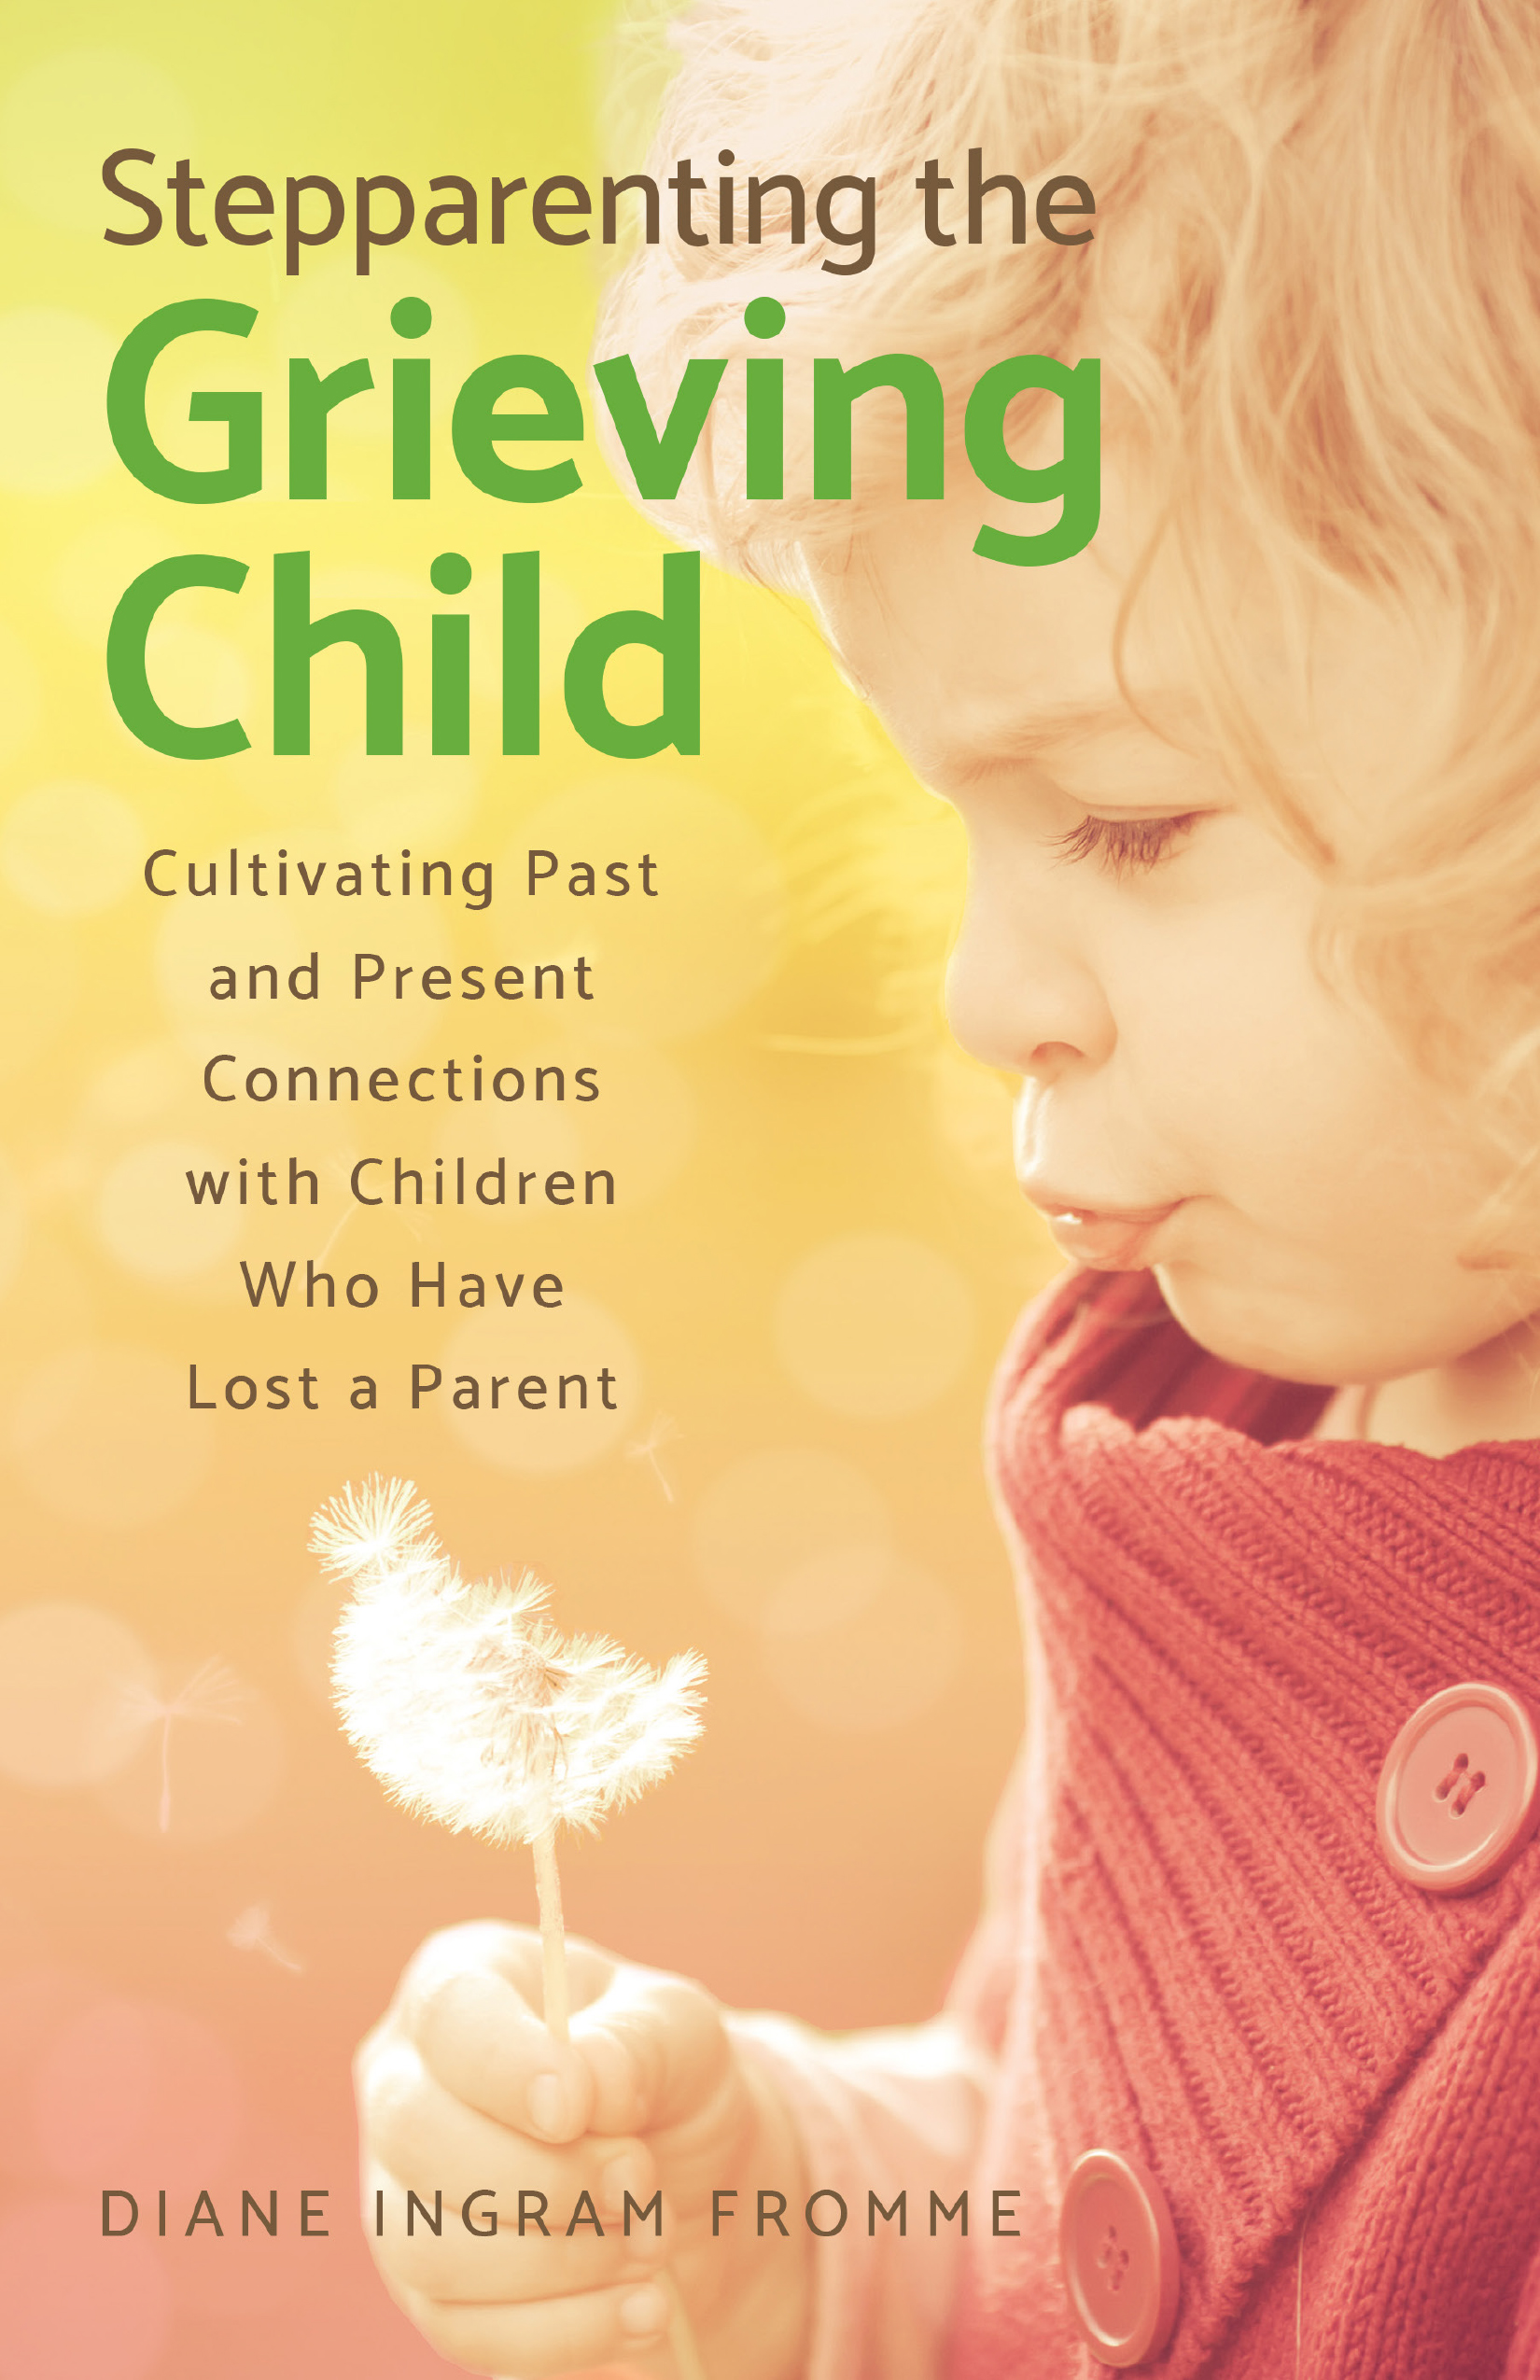 Stepparenting the Grieving Child by Diane Ingram Fromme